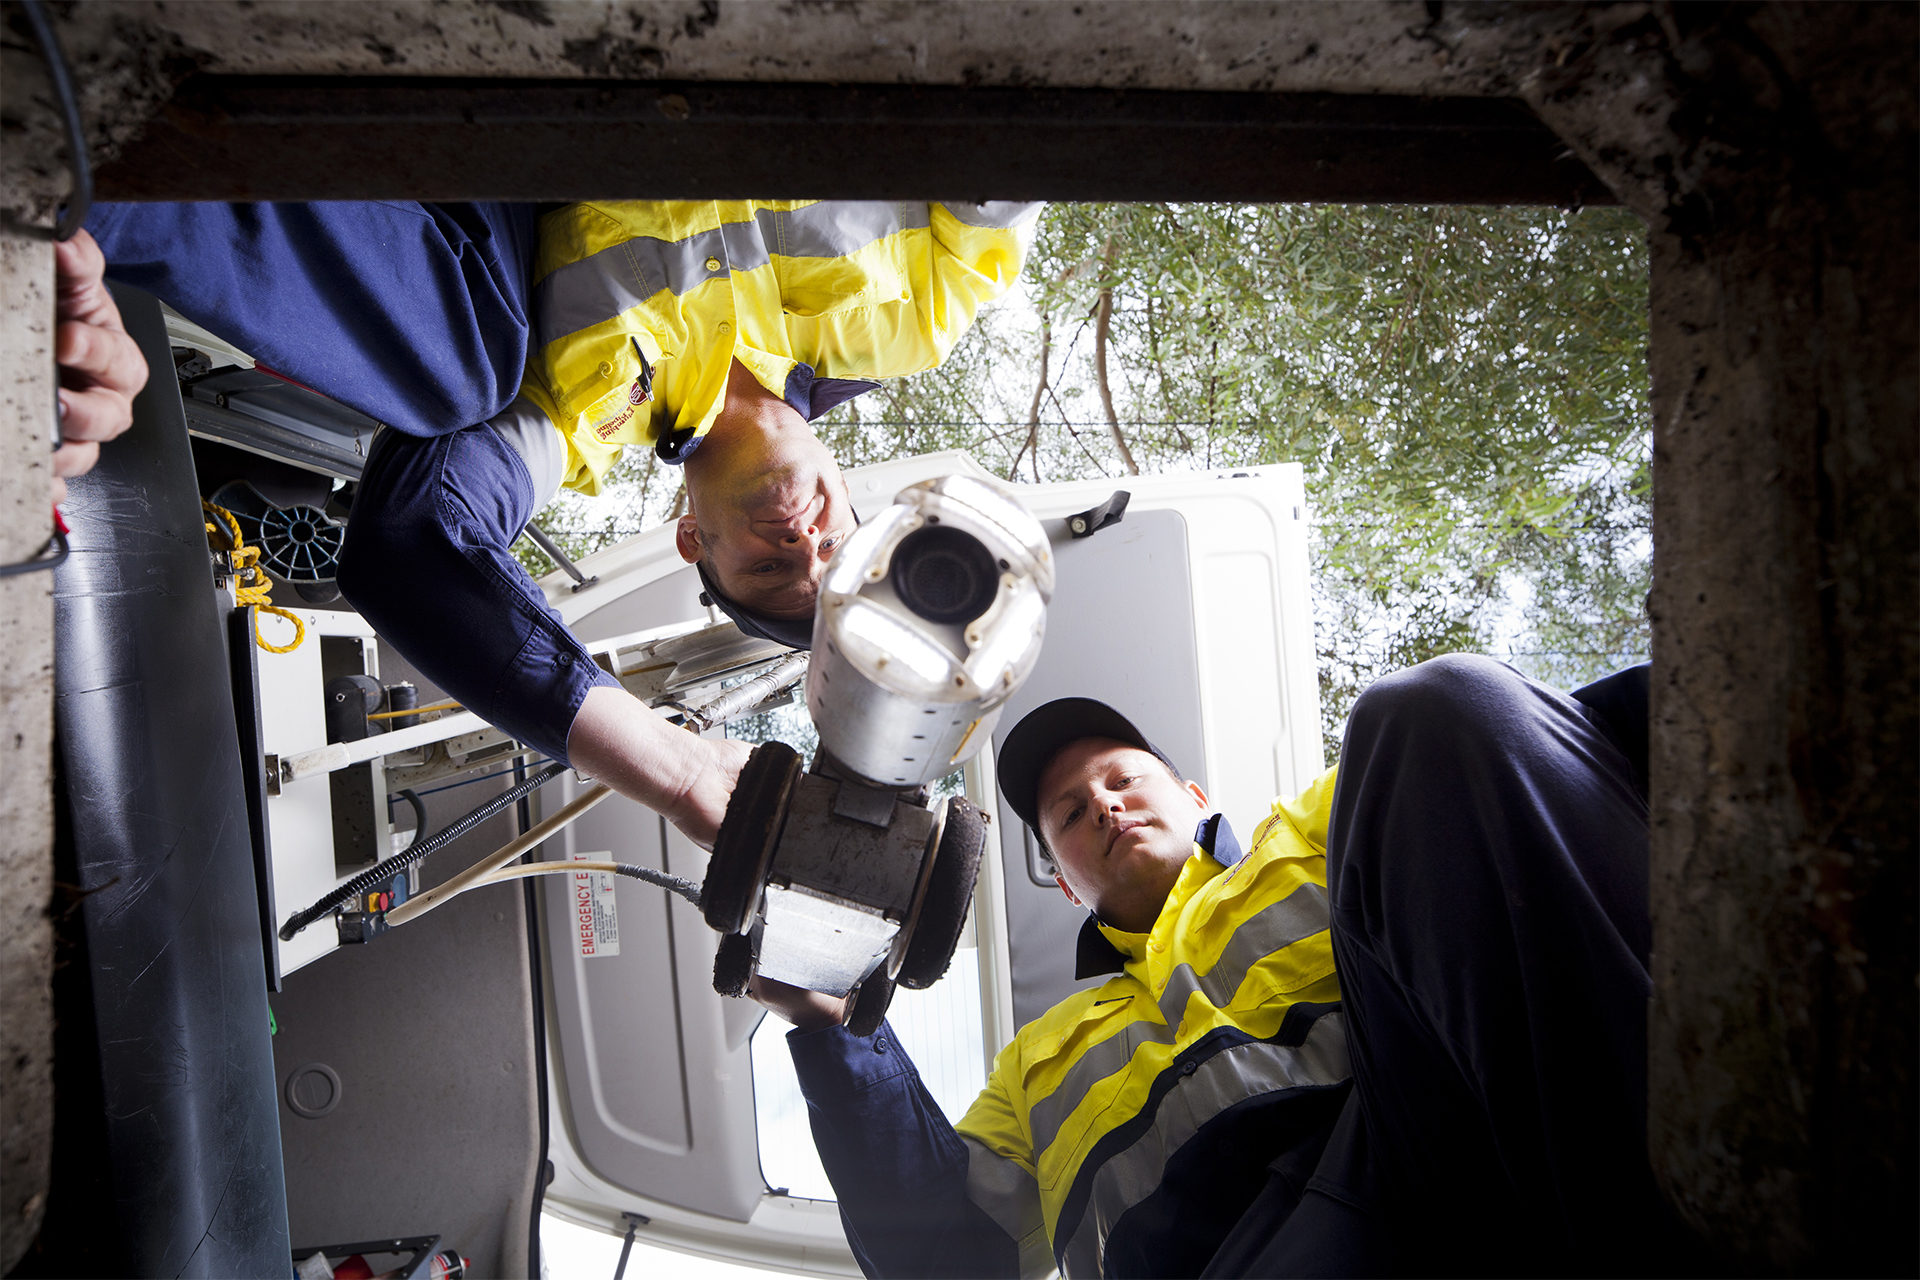 Commercial plumbers are doing CCTV pipeline inspection